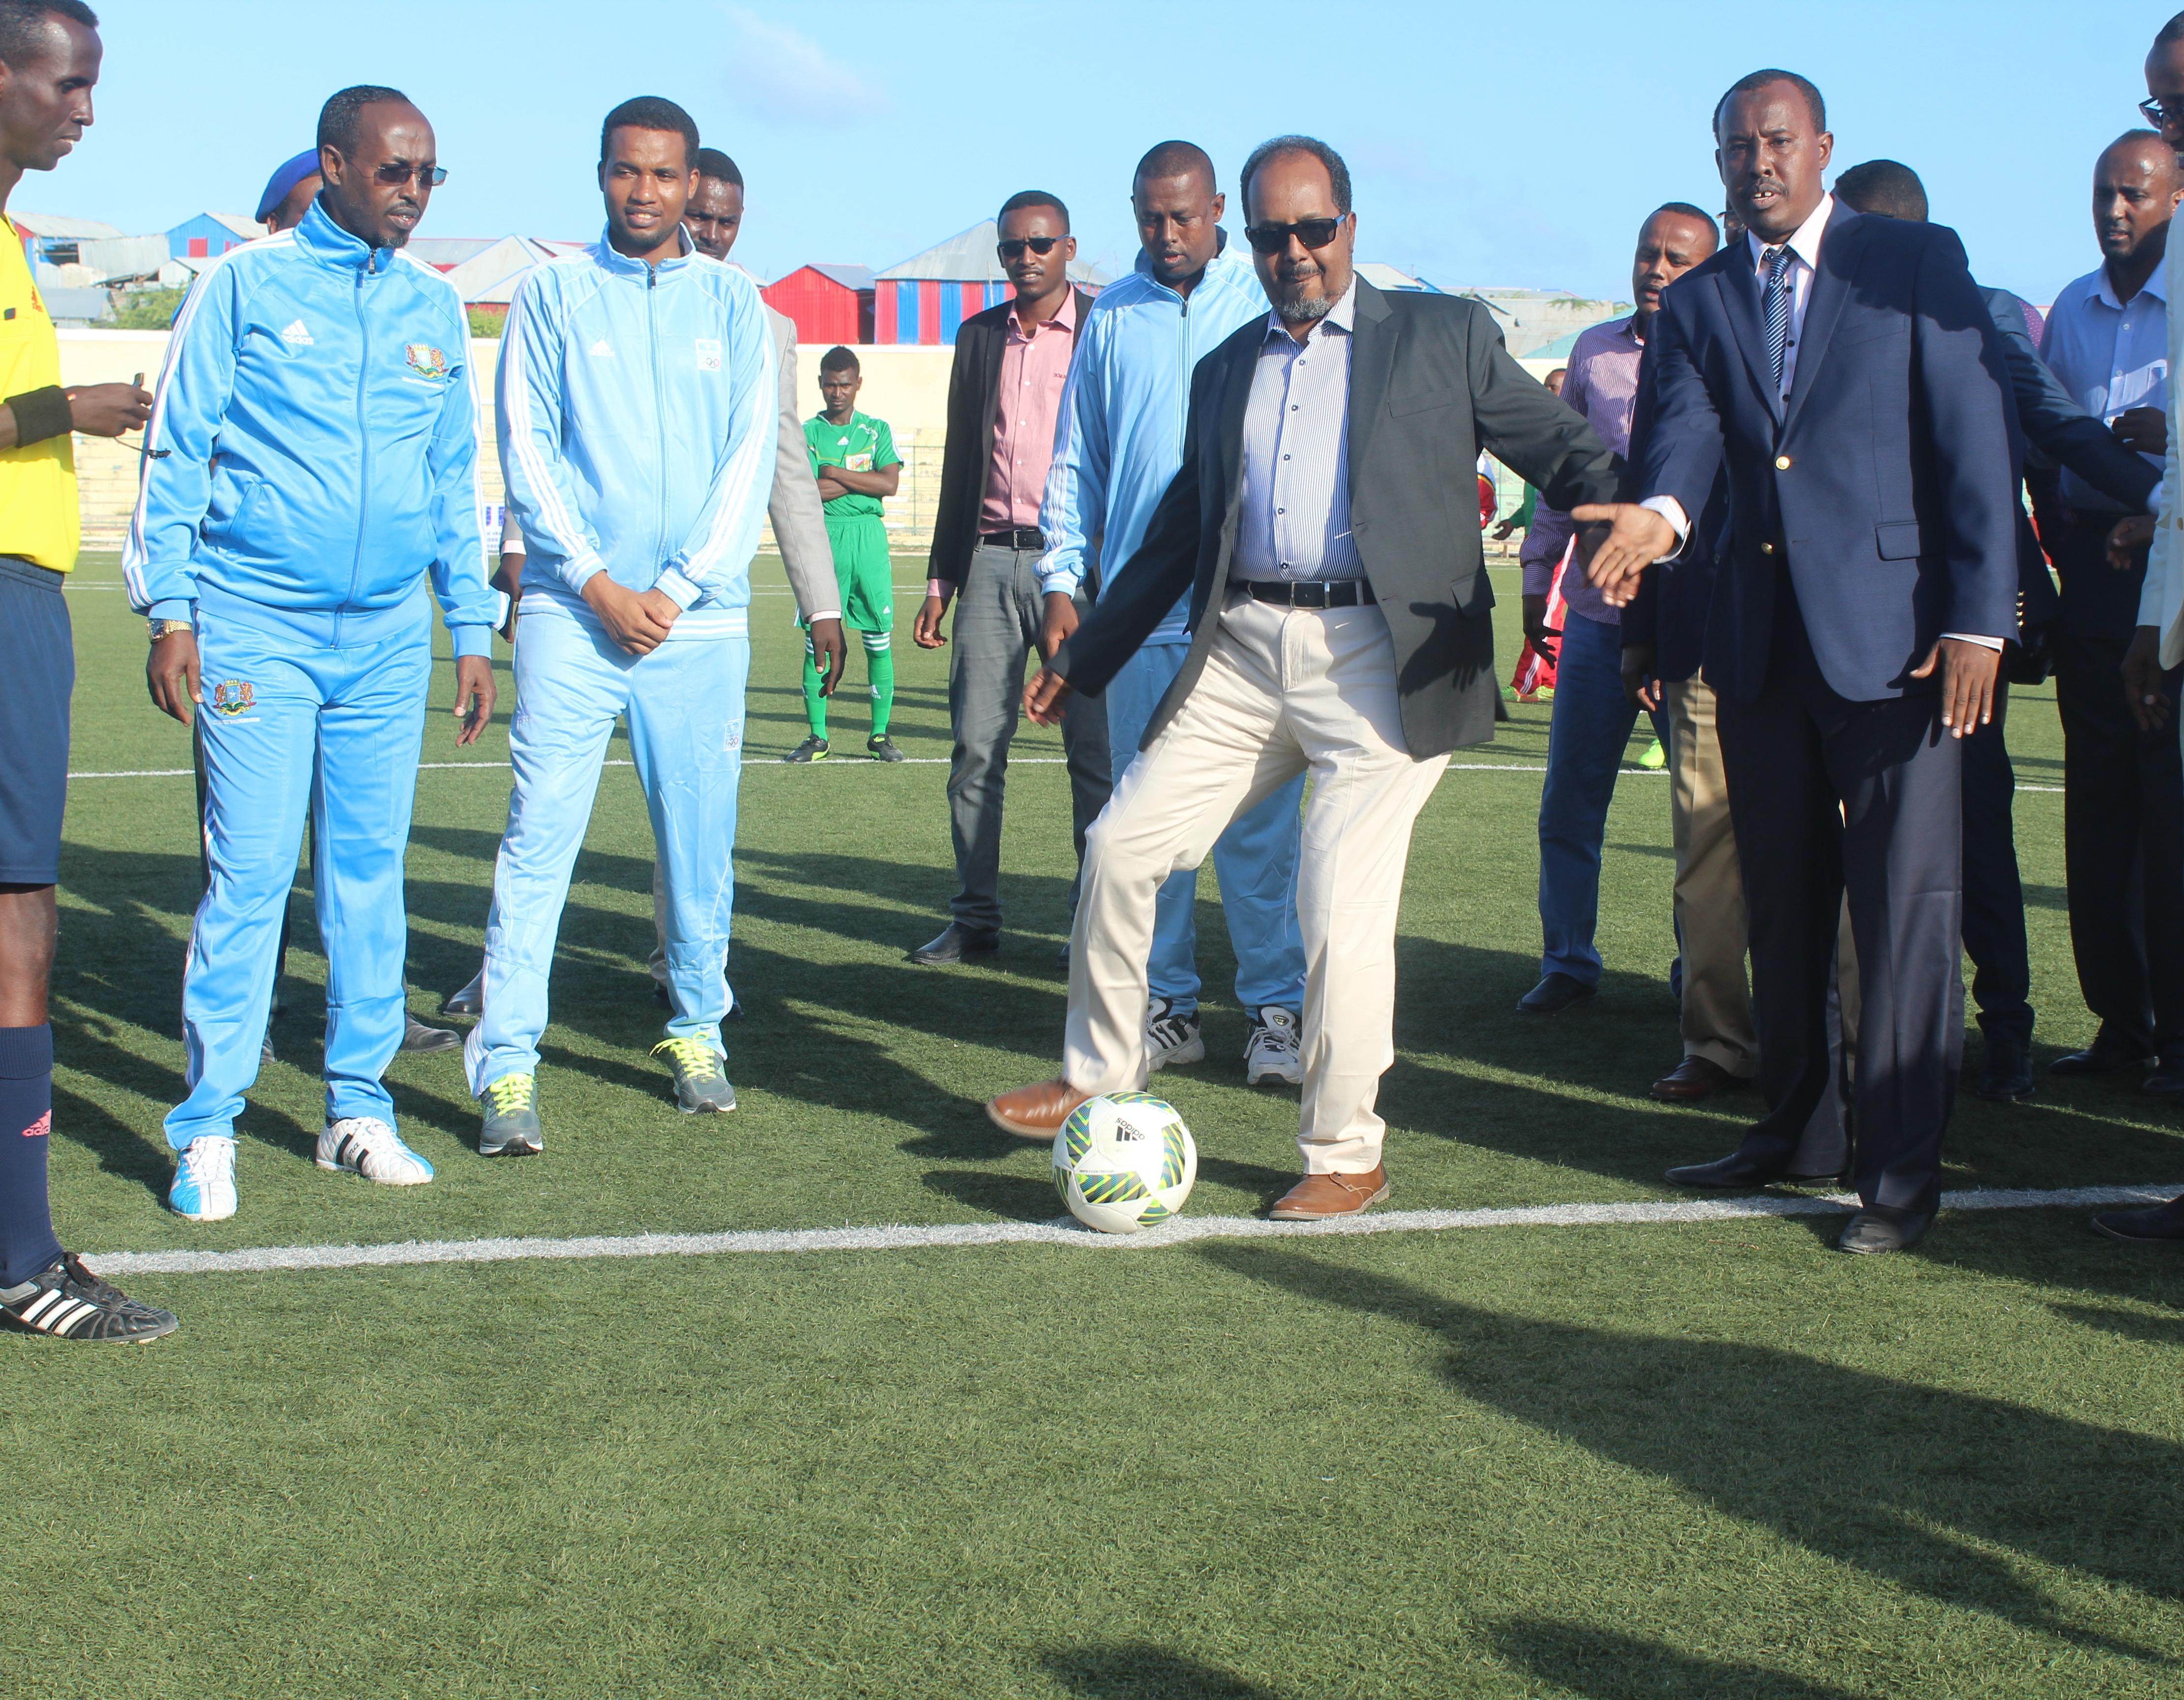 Somali President Prof Hassan Sheik Mahmoud officially opens the first inter-state football tournament